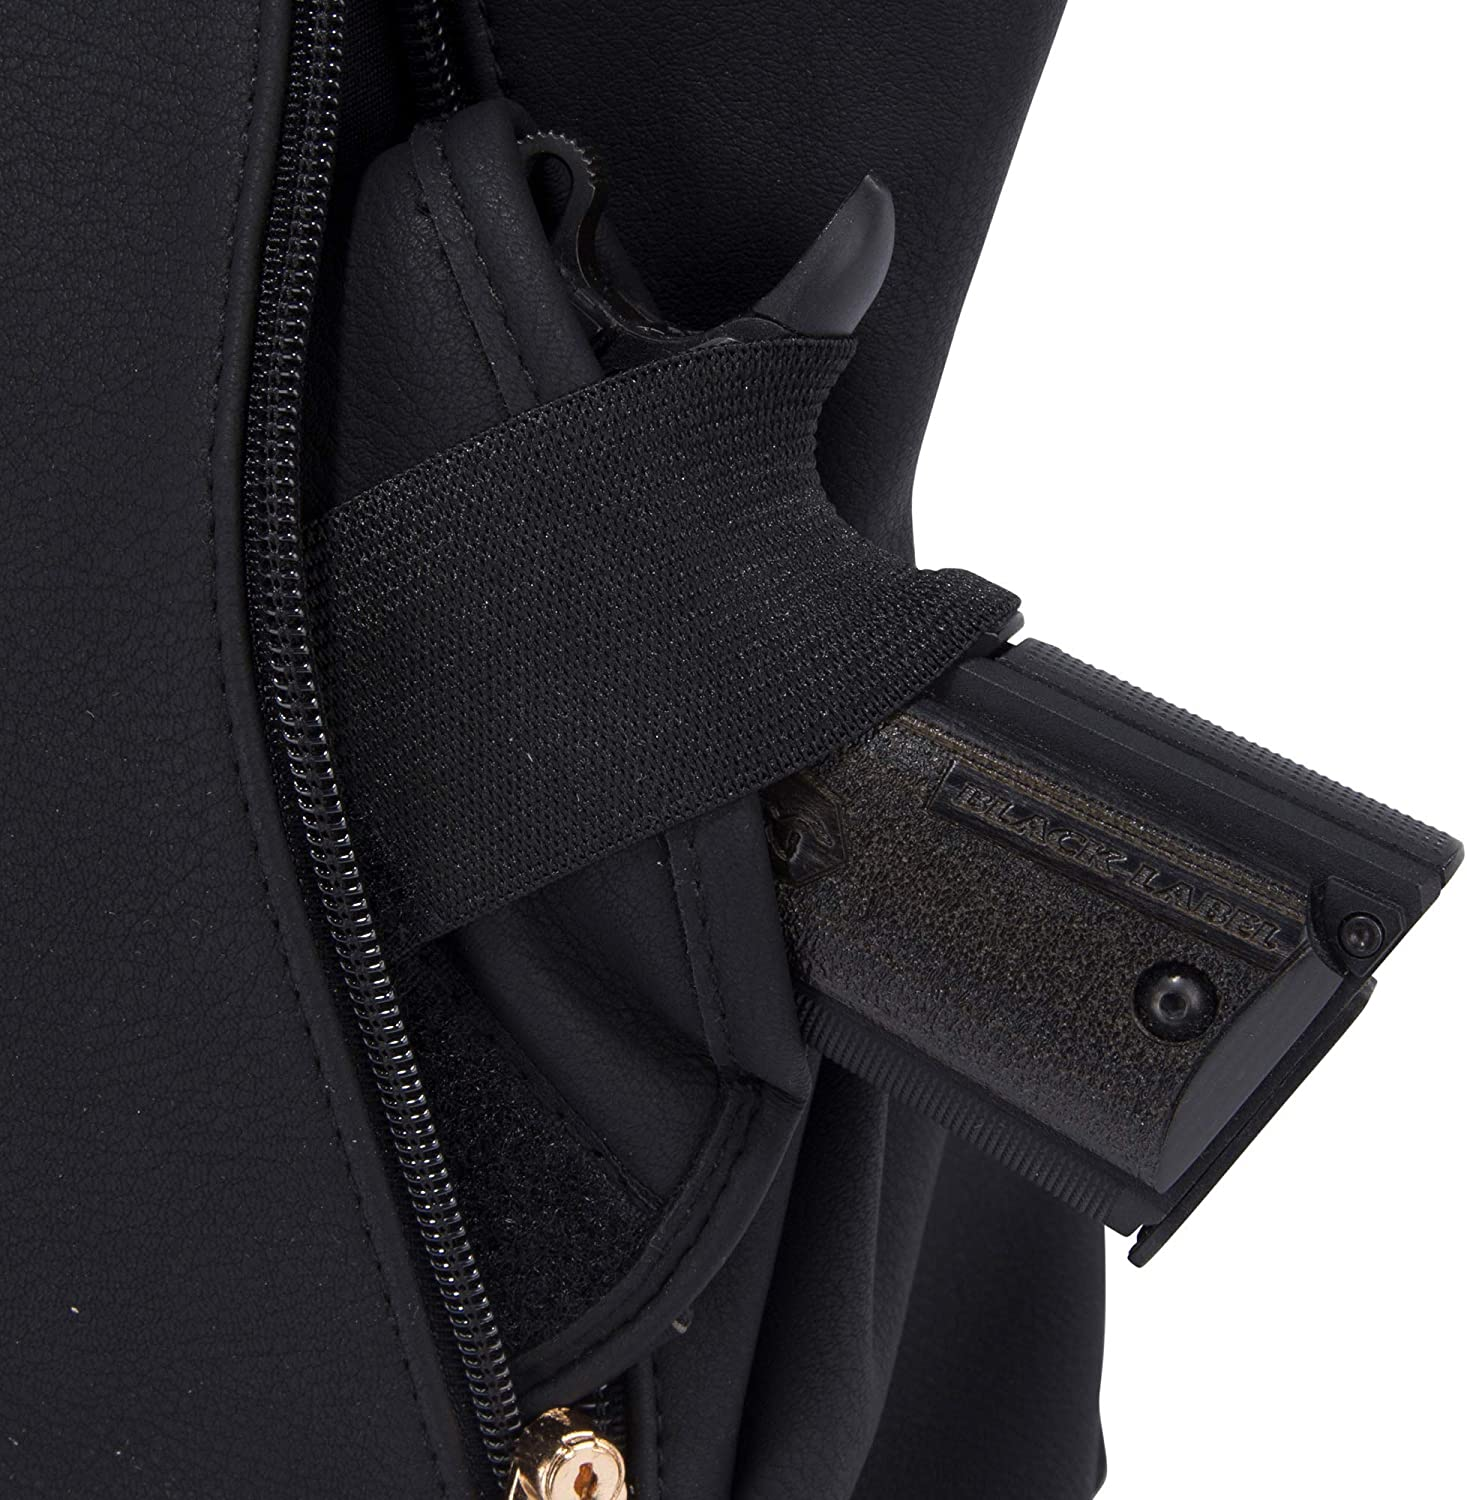 SPG Outdoors Browning Alessandria Concealed Carry Borsetta Black